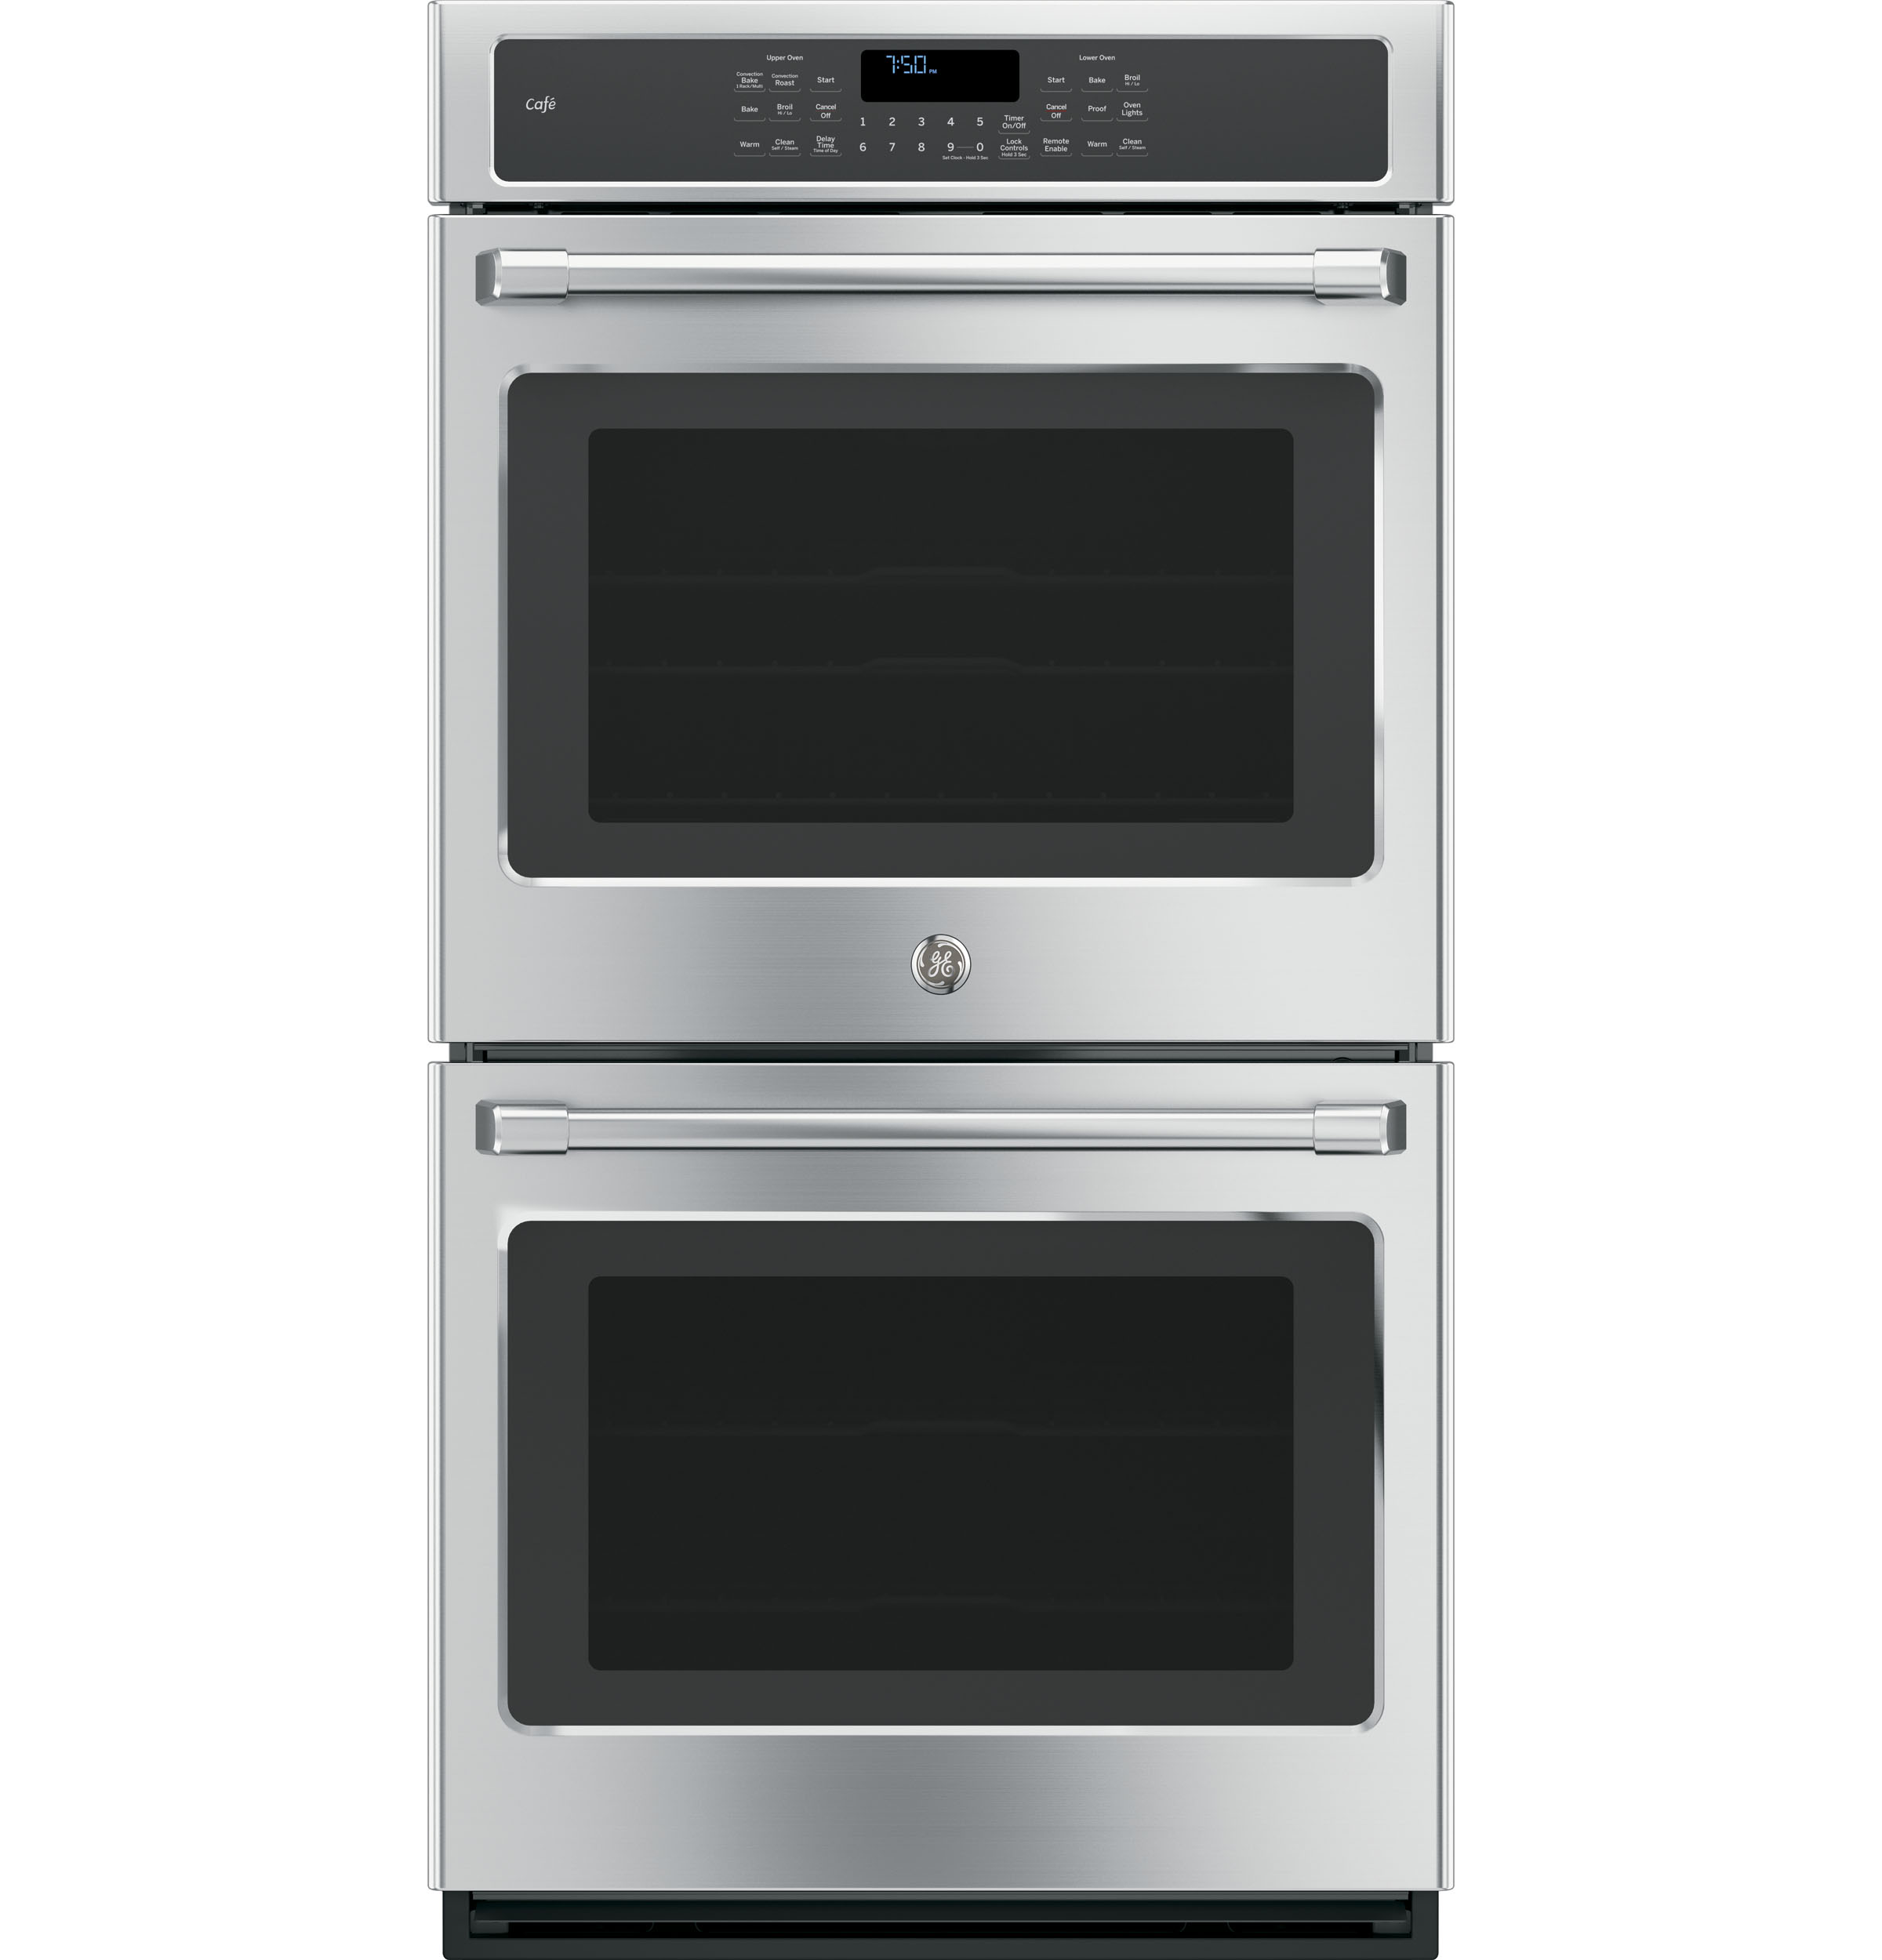 "GE Cafe GE Café™ Series 27"" Built-in Double Wall Oven with Convection"